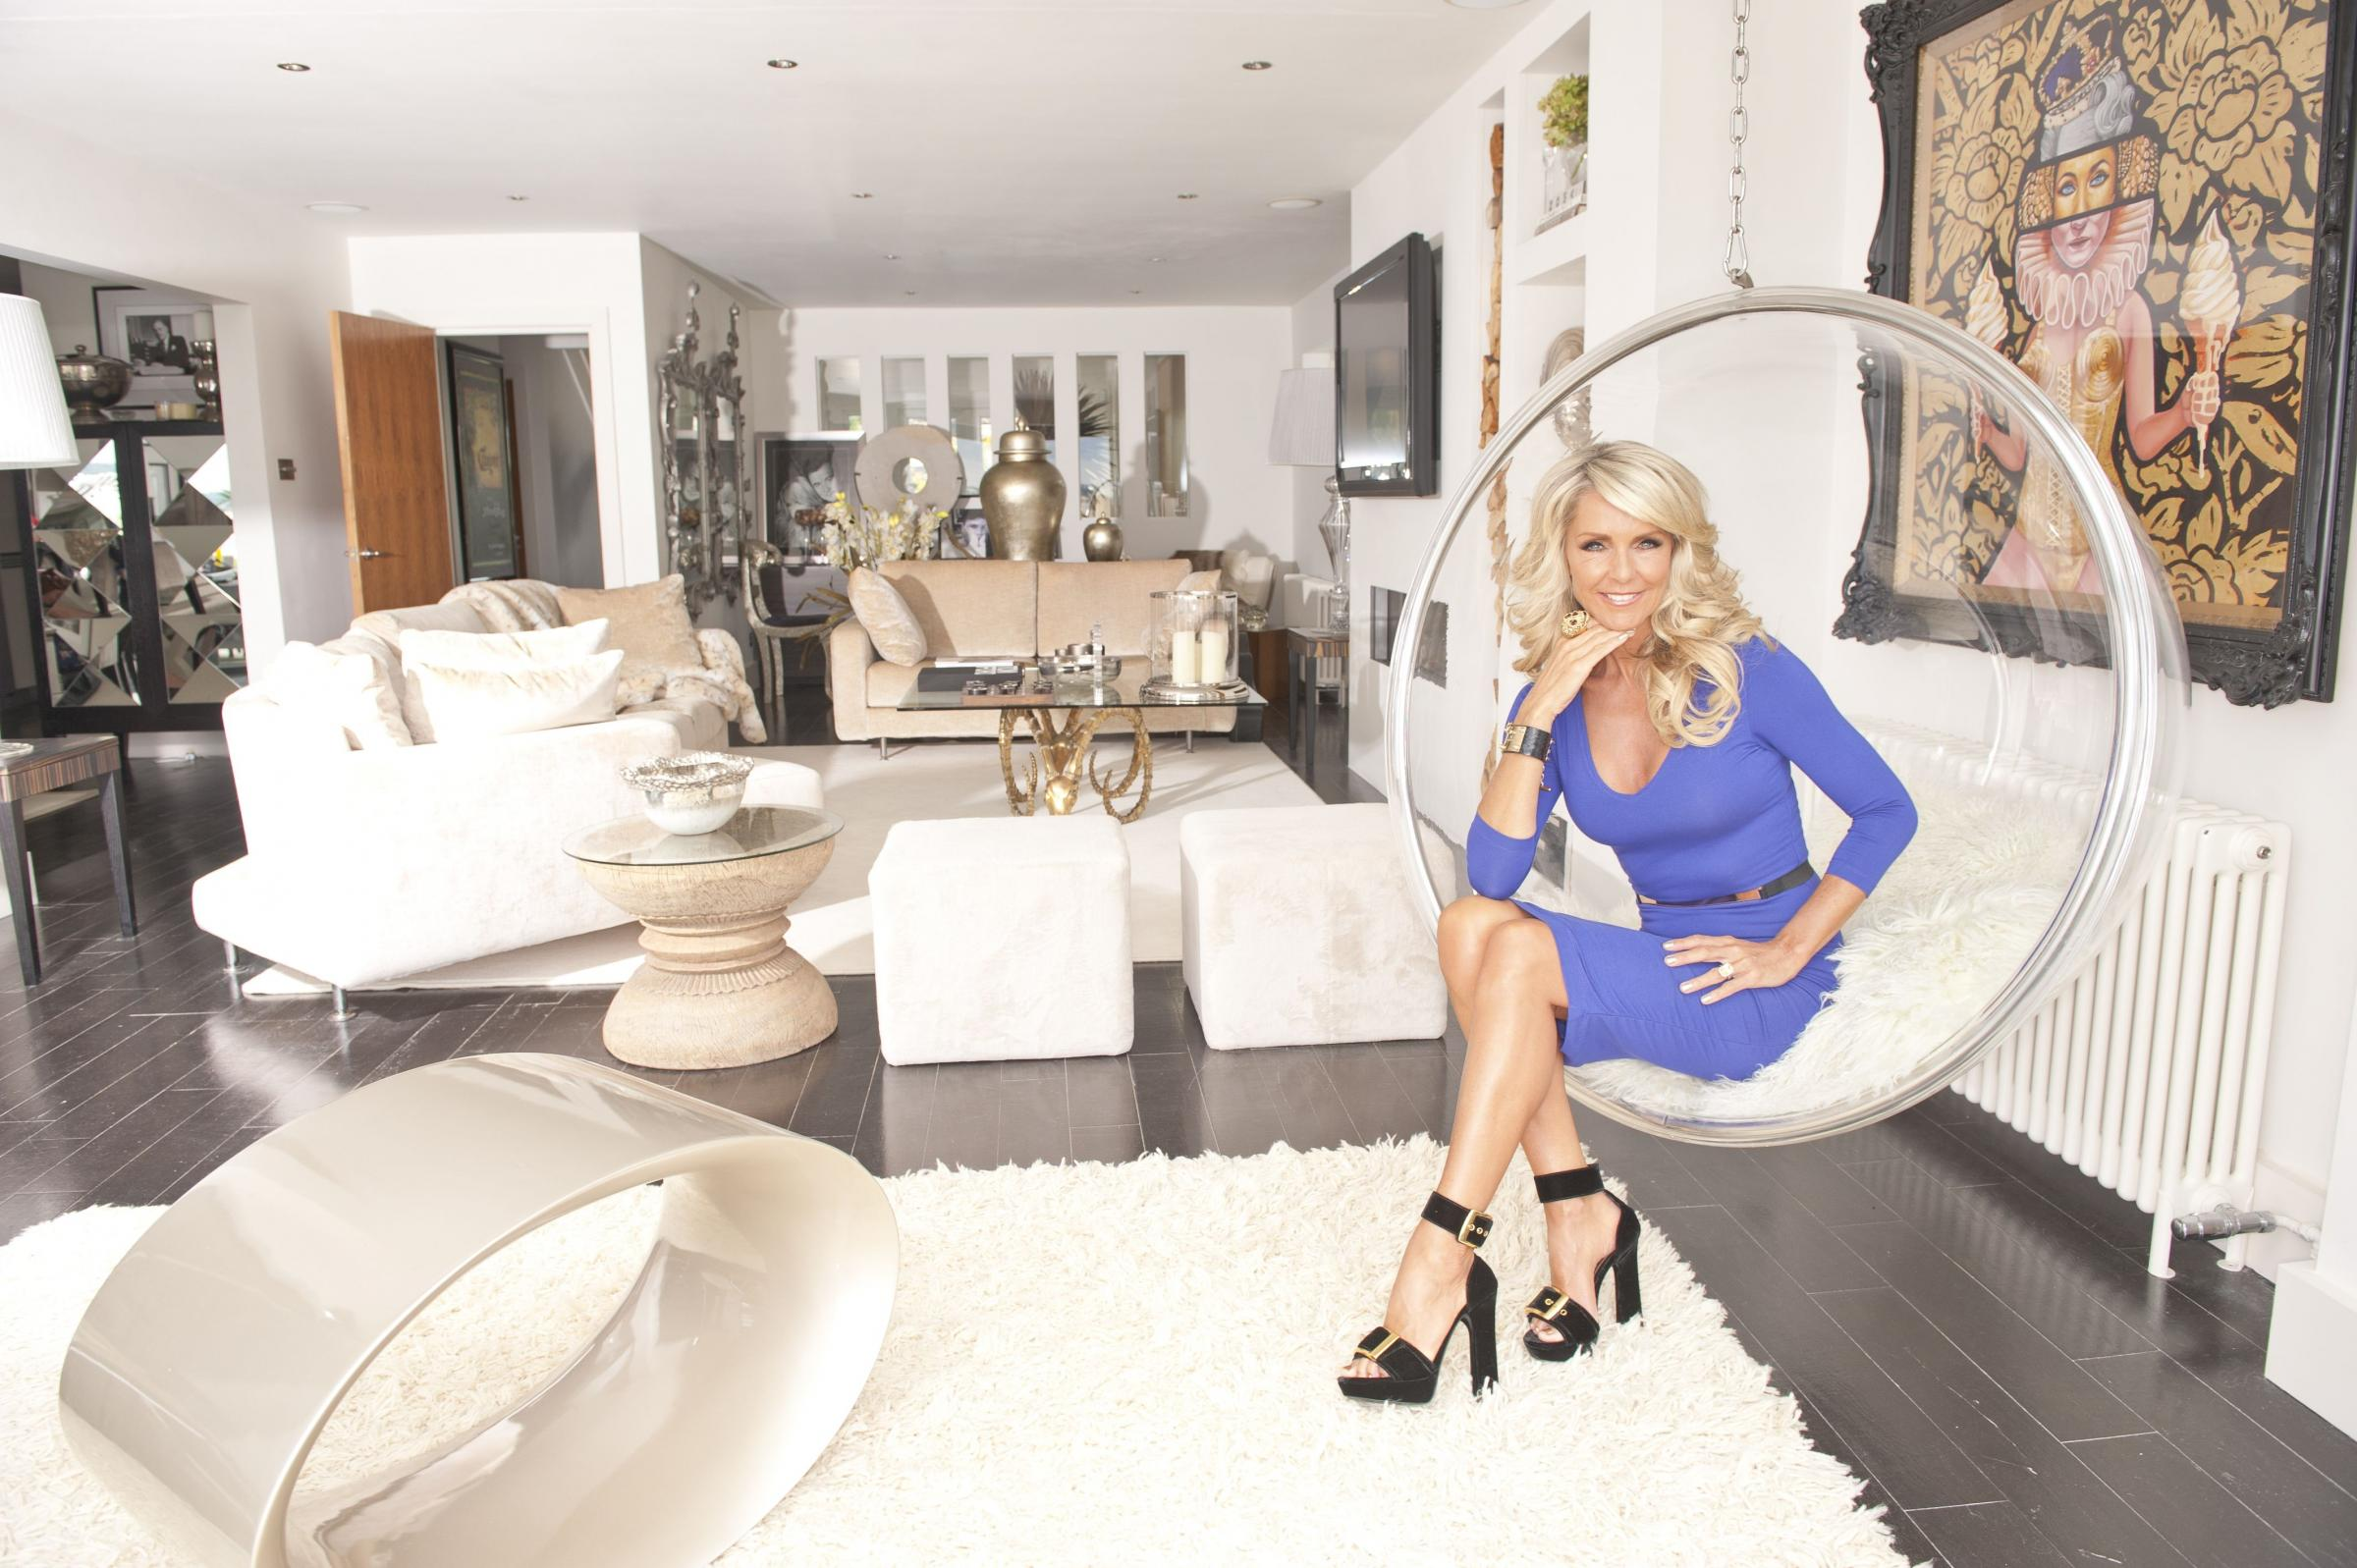 Interior designer Celia Sawyer talks being tough on her makeover show, jogging bottoms and luxury homes